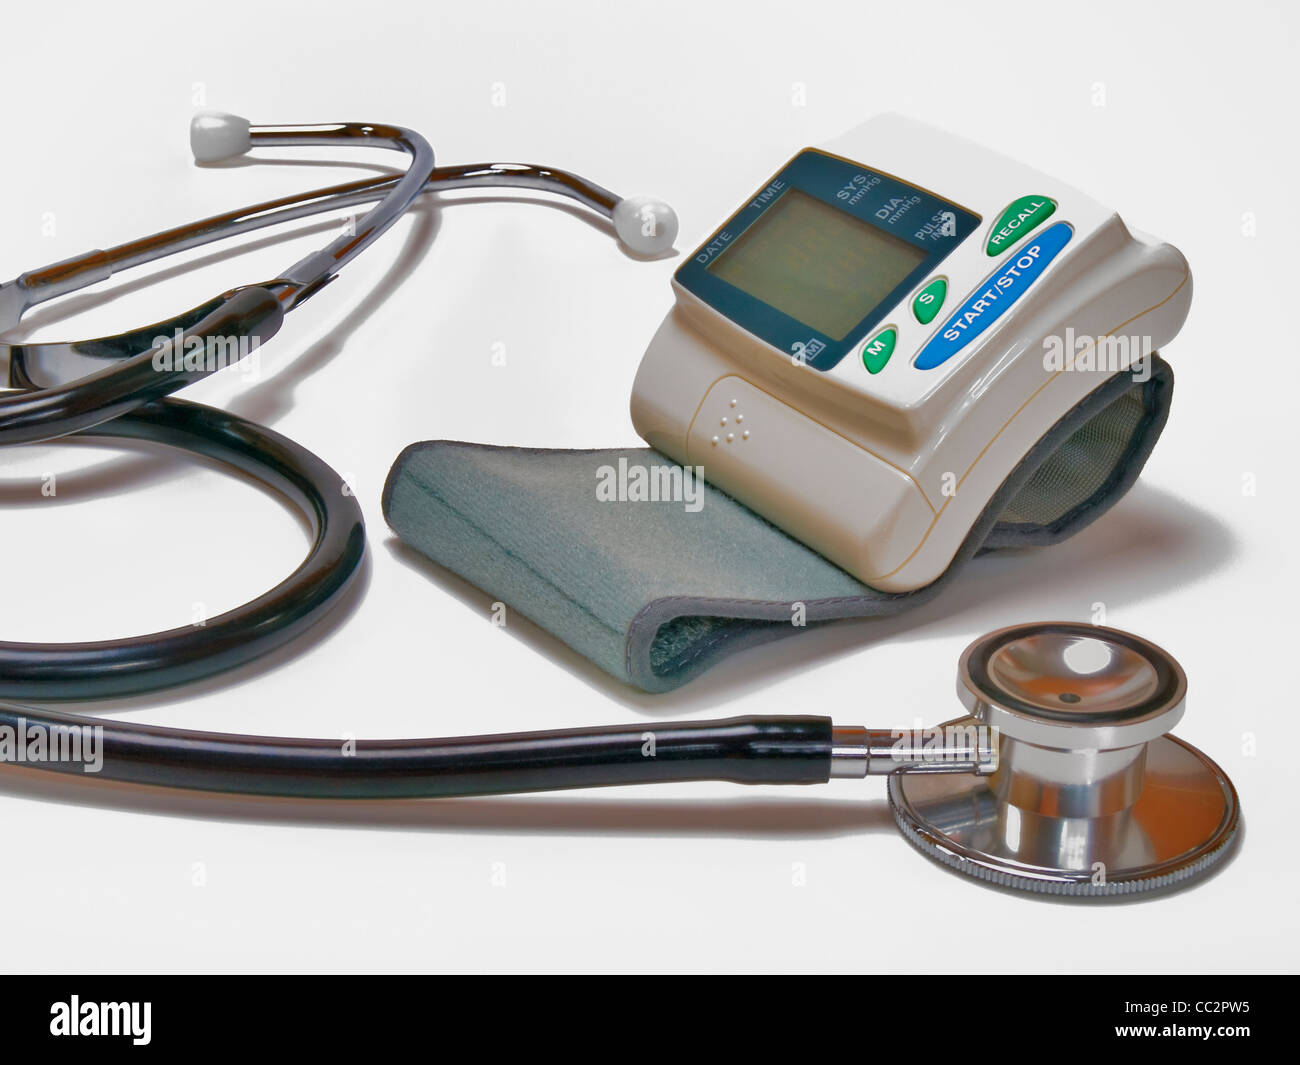 a Sphygmomanometer, beside is a Stethoscope - Stock Image